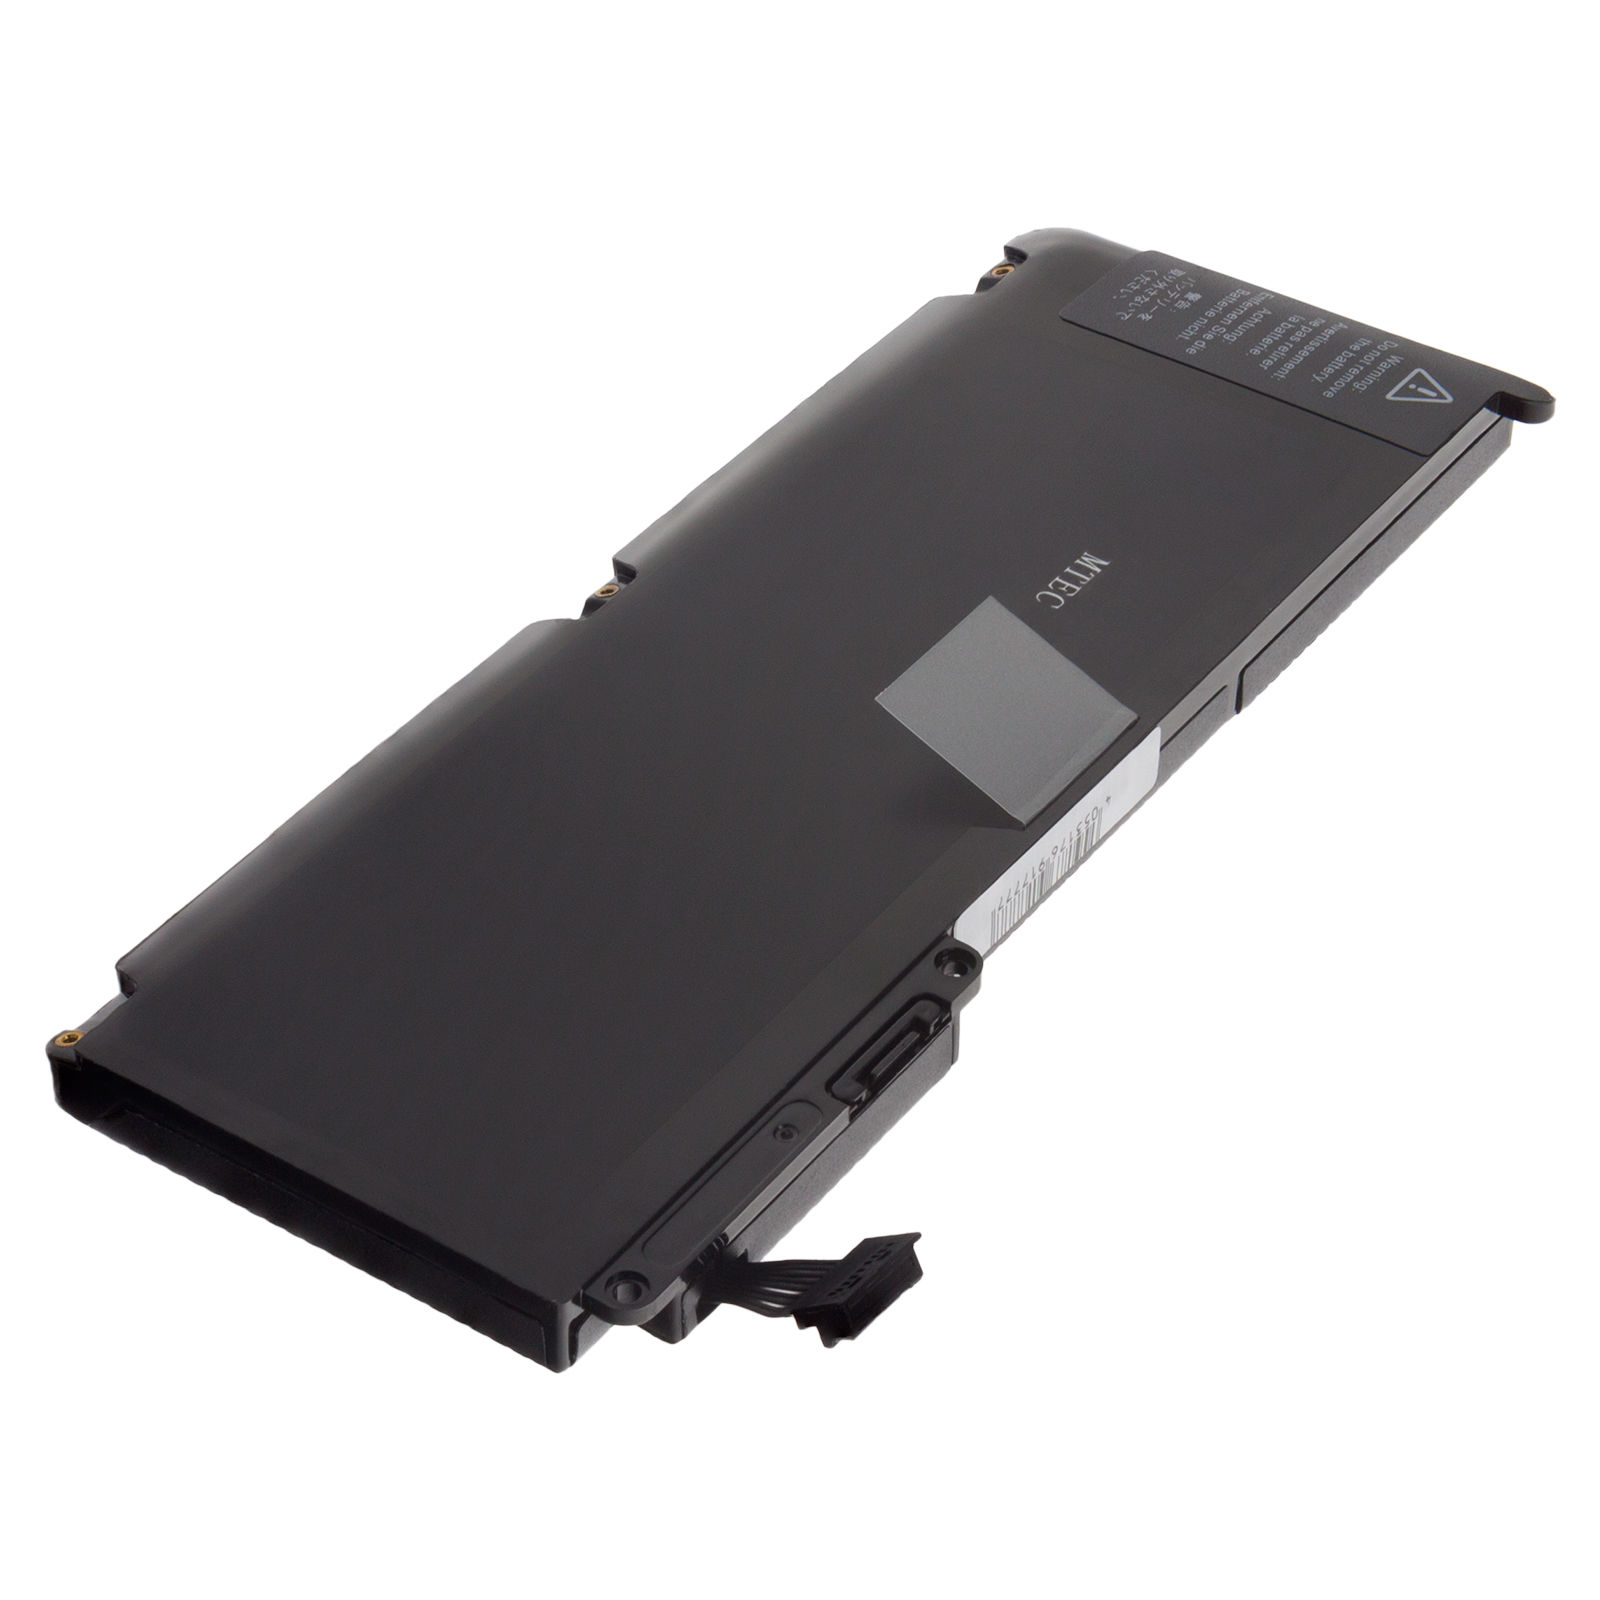 "Baterie pro Apple MacBook Unibody 13"" A1331 A1342 661-5391 020-6580-A"